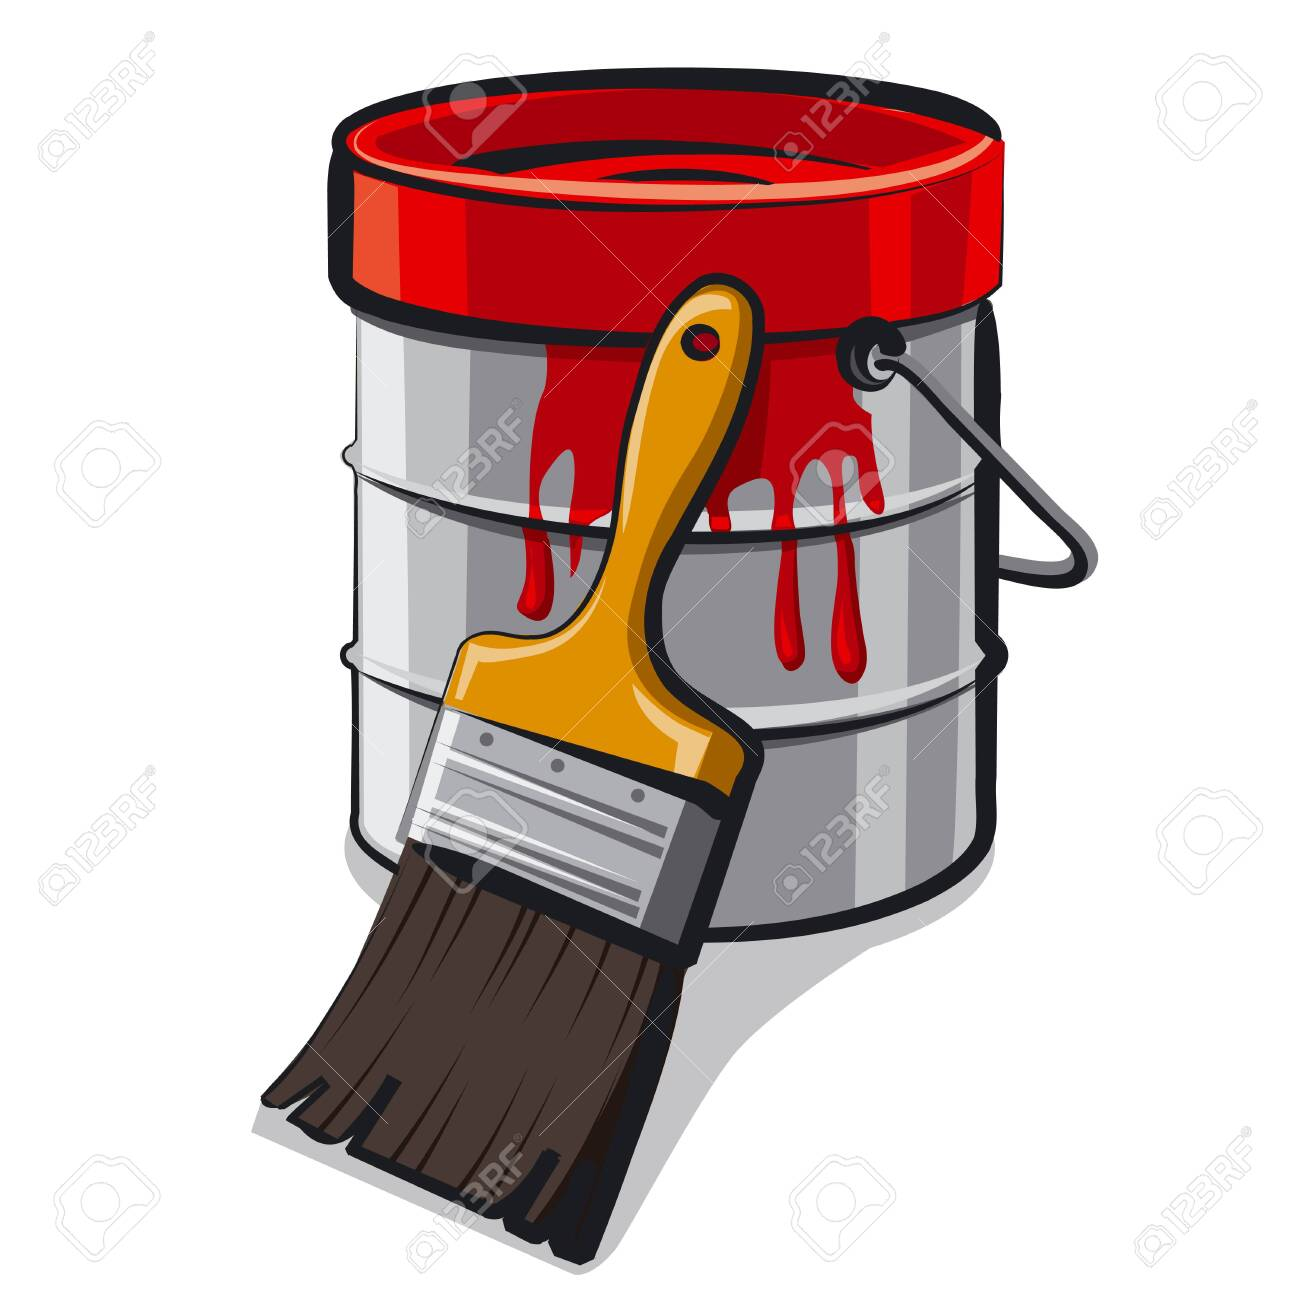 Illustration Of The Red Paint Bucket With A Brush On The White Royalty Free Cliparts Vectors And Stock Illustration Image 156026753